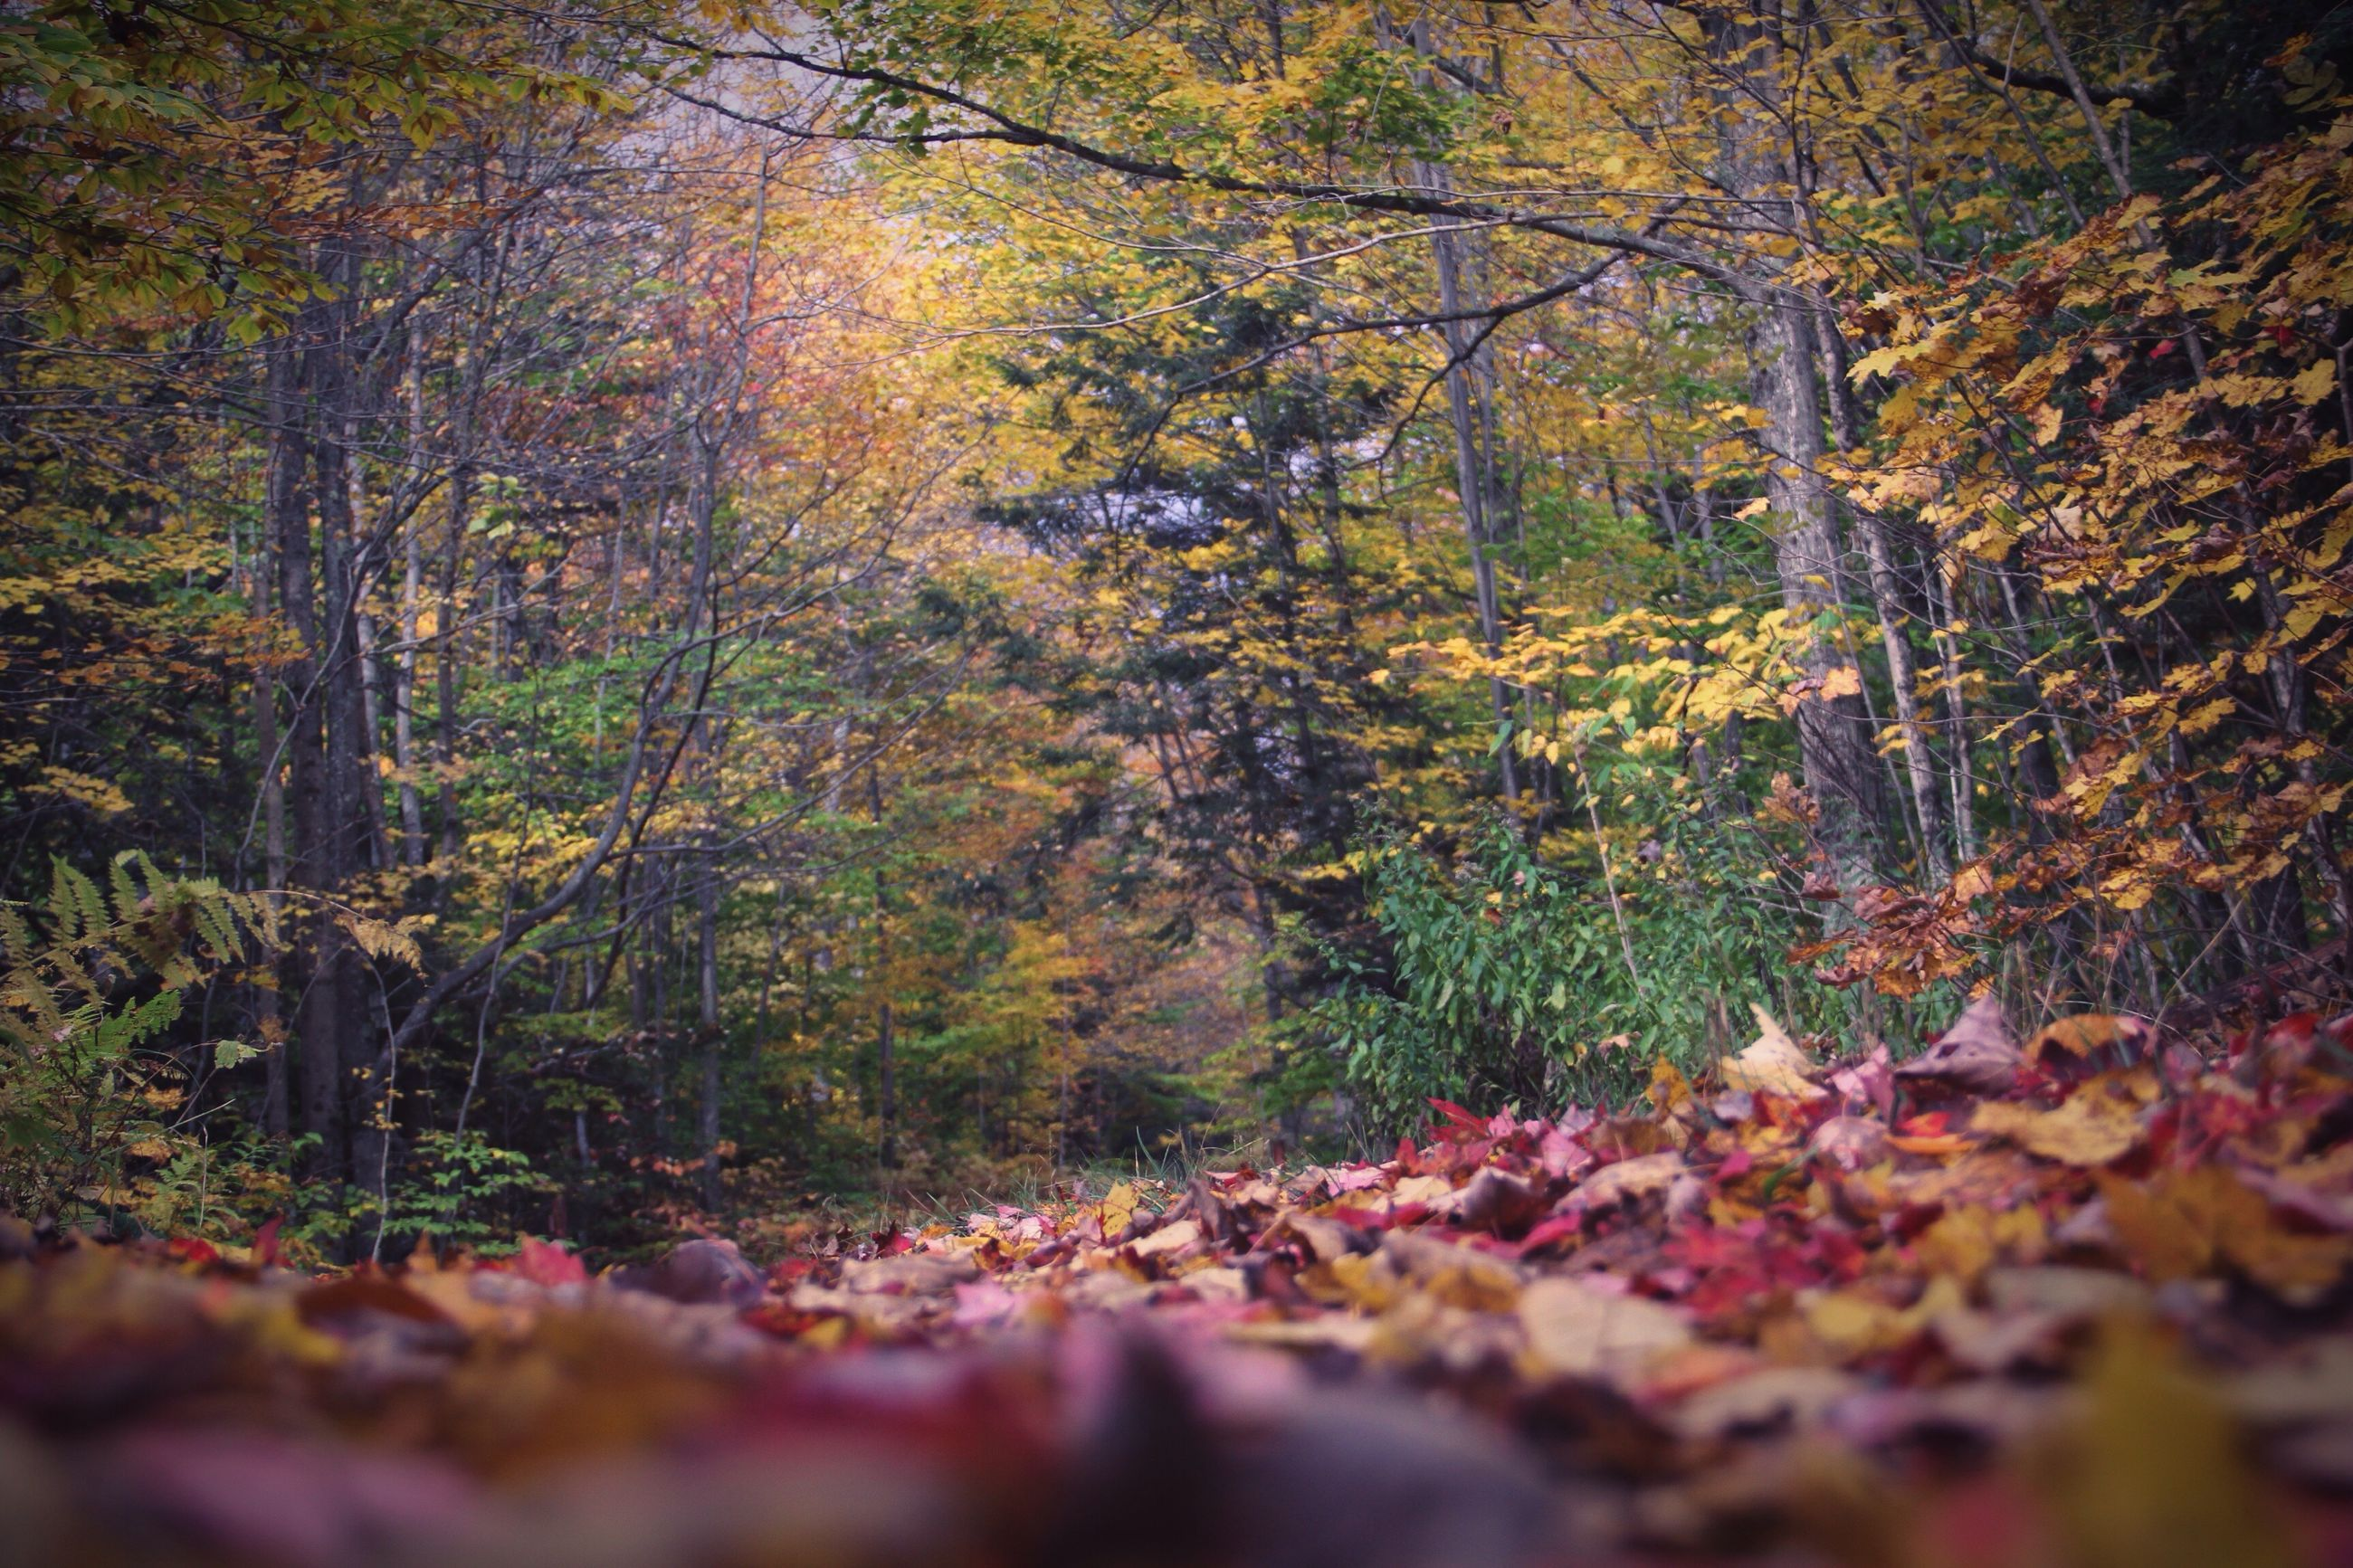 tree, autumn, tranquility, forest, nature, growth, change, surface level, tranquil scene, selective focus, beauty in nature, leaf, scenics, the way forward, season, fallen, landscape, non-urban scene, outdoors, day